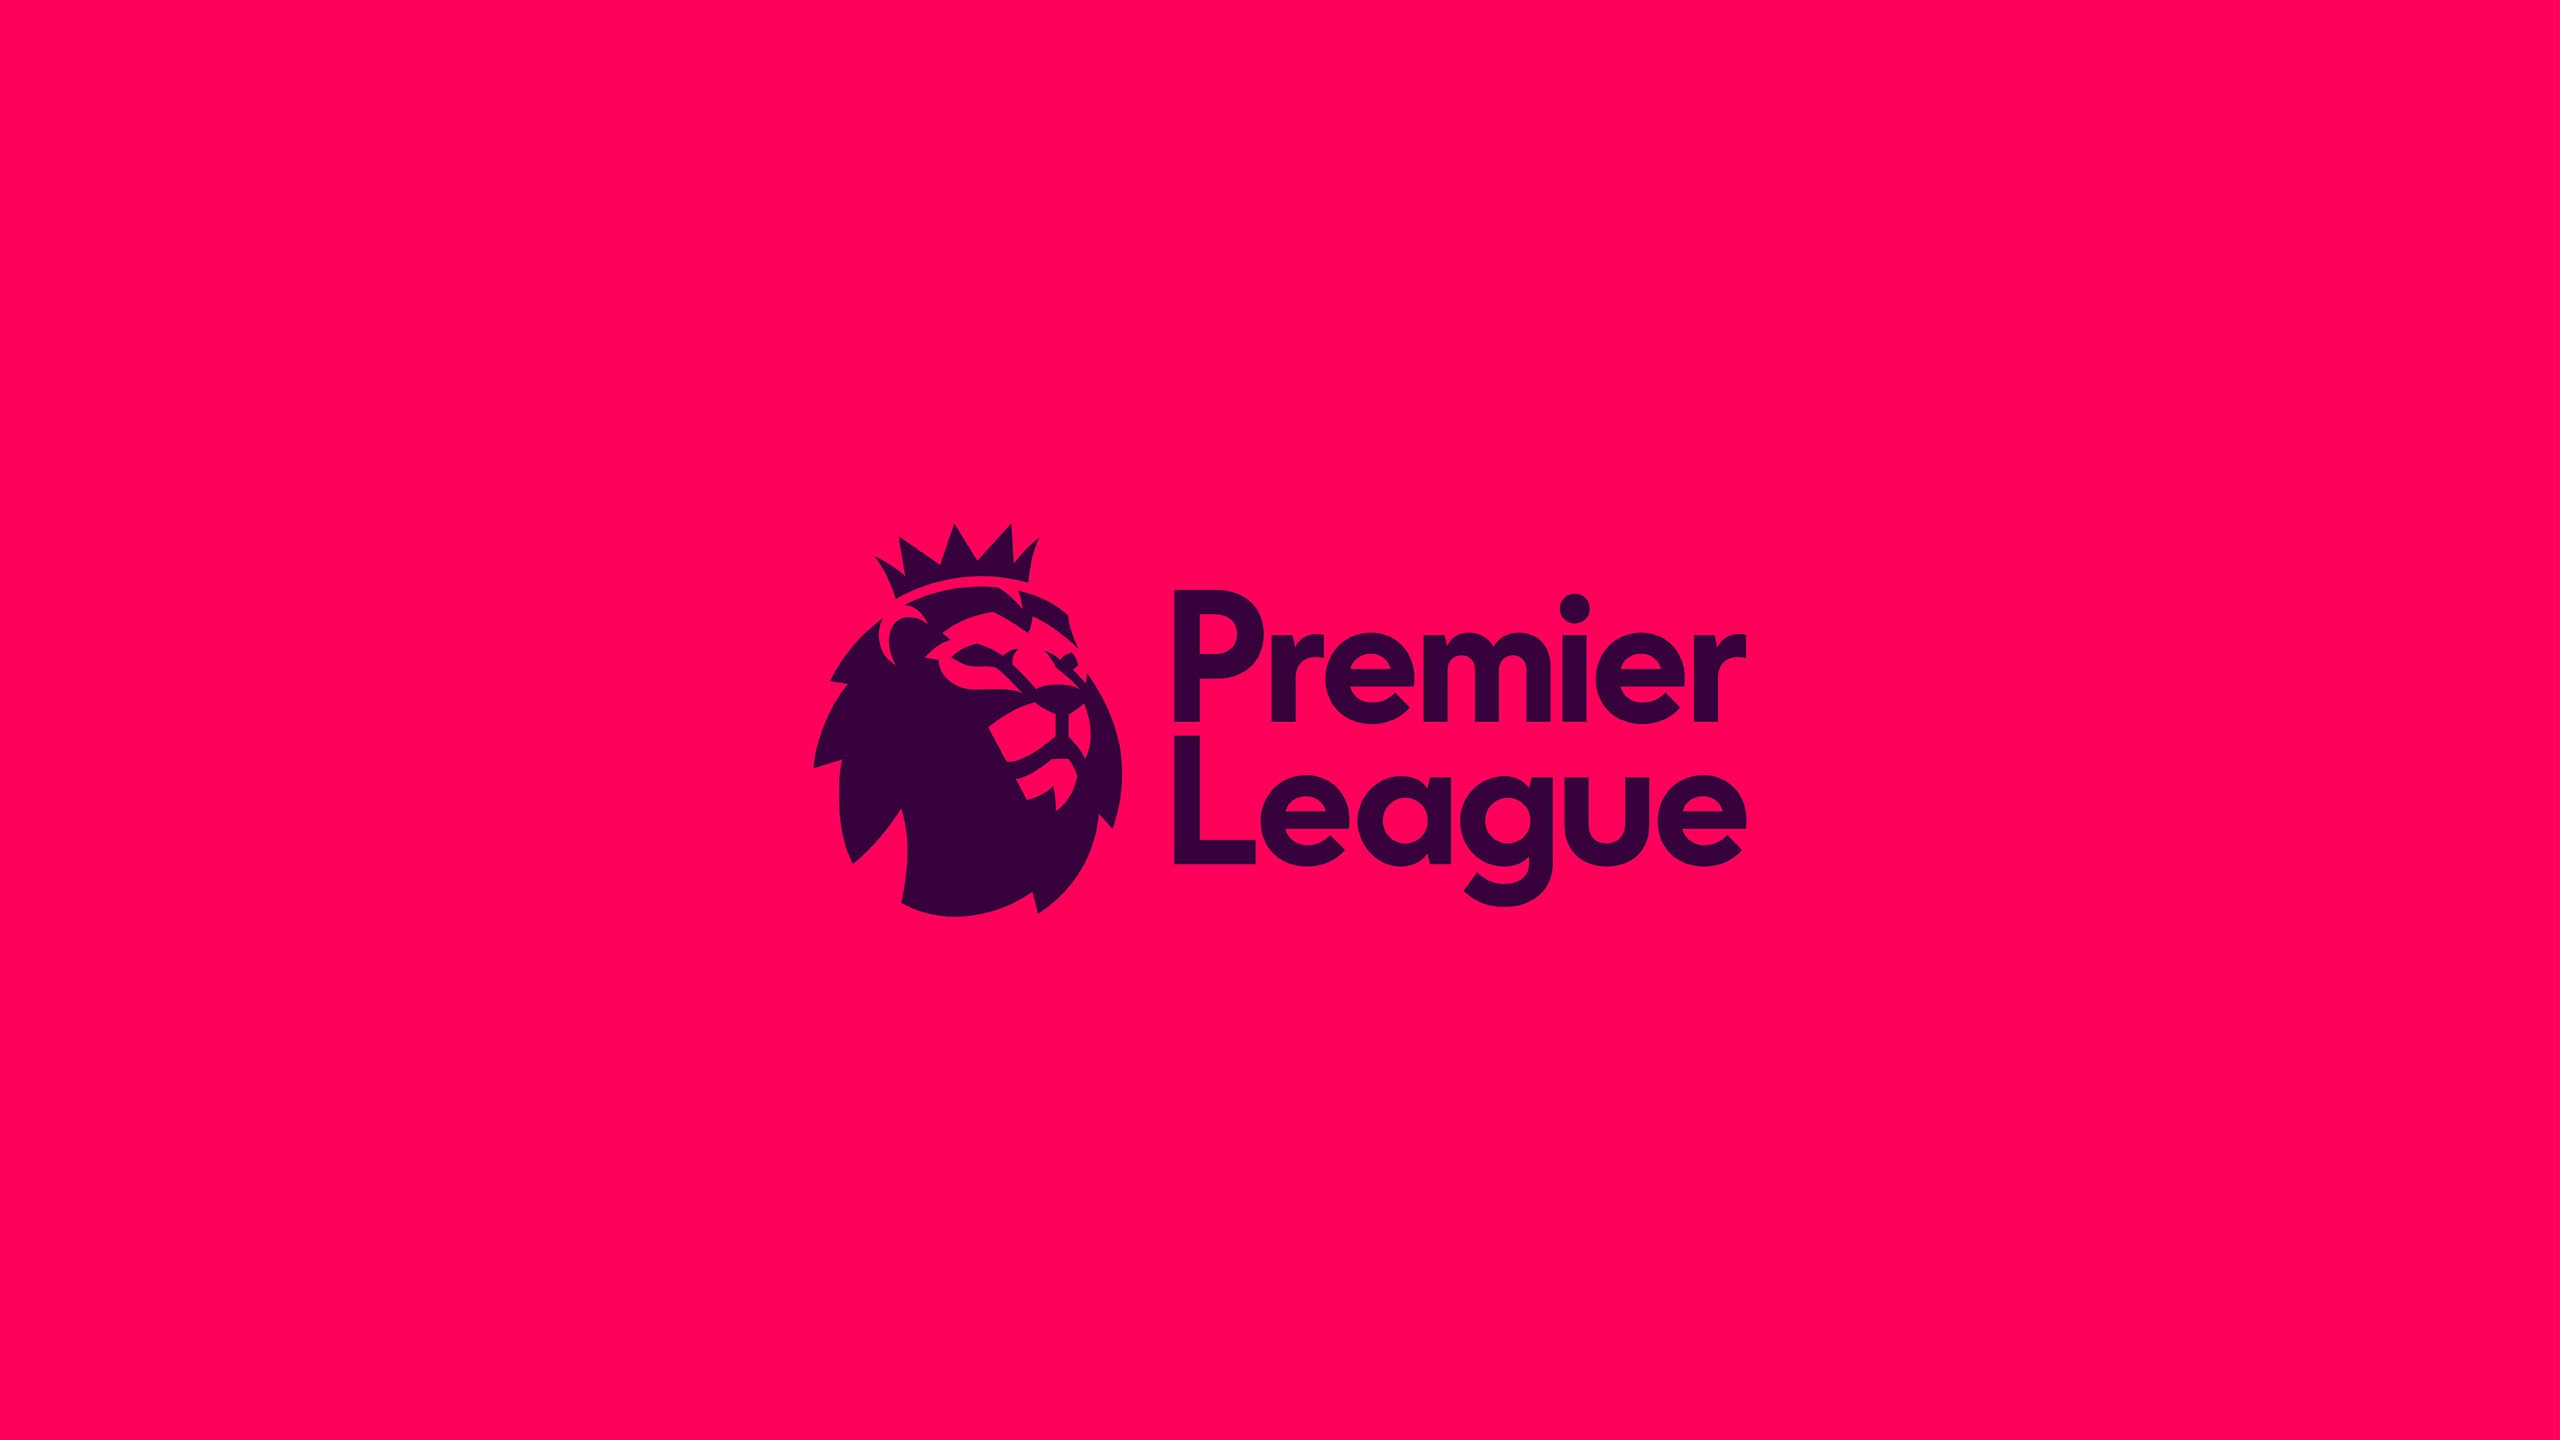 Premier League — rebrand - Lenine(on) - Medium